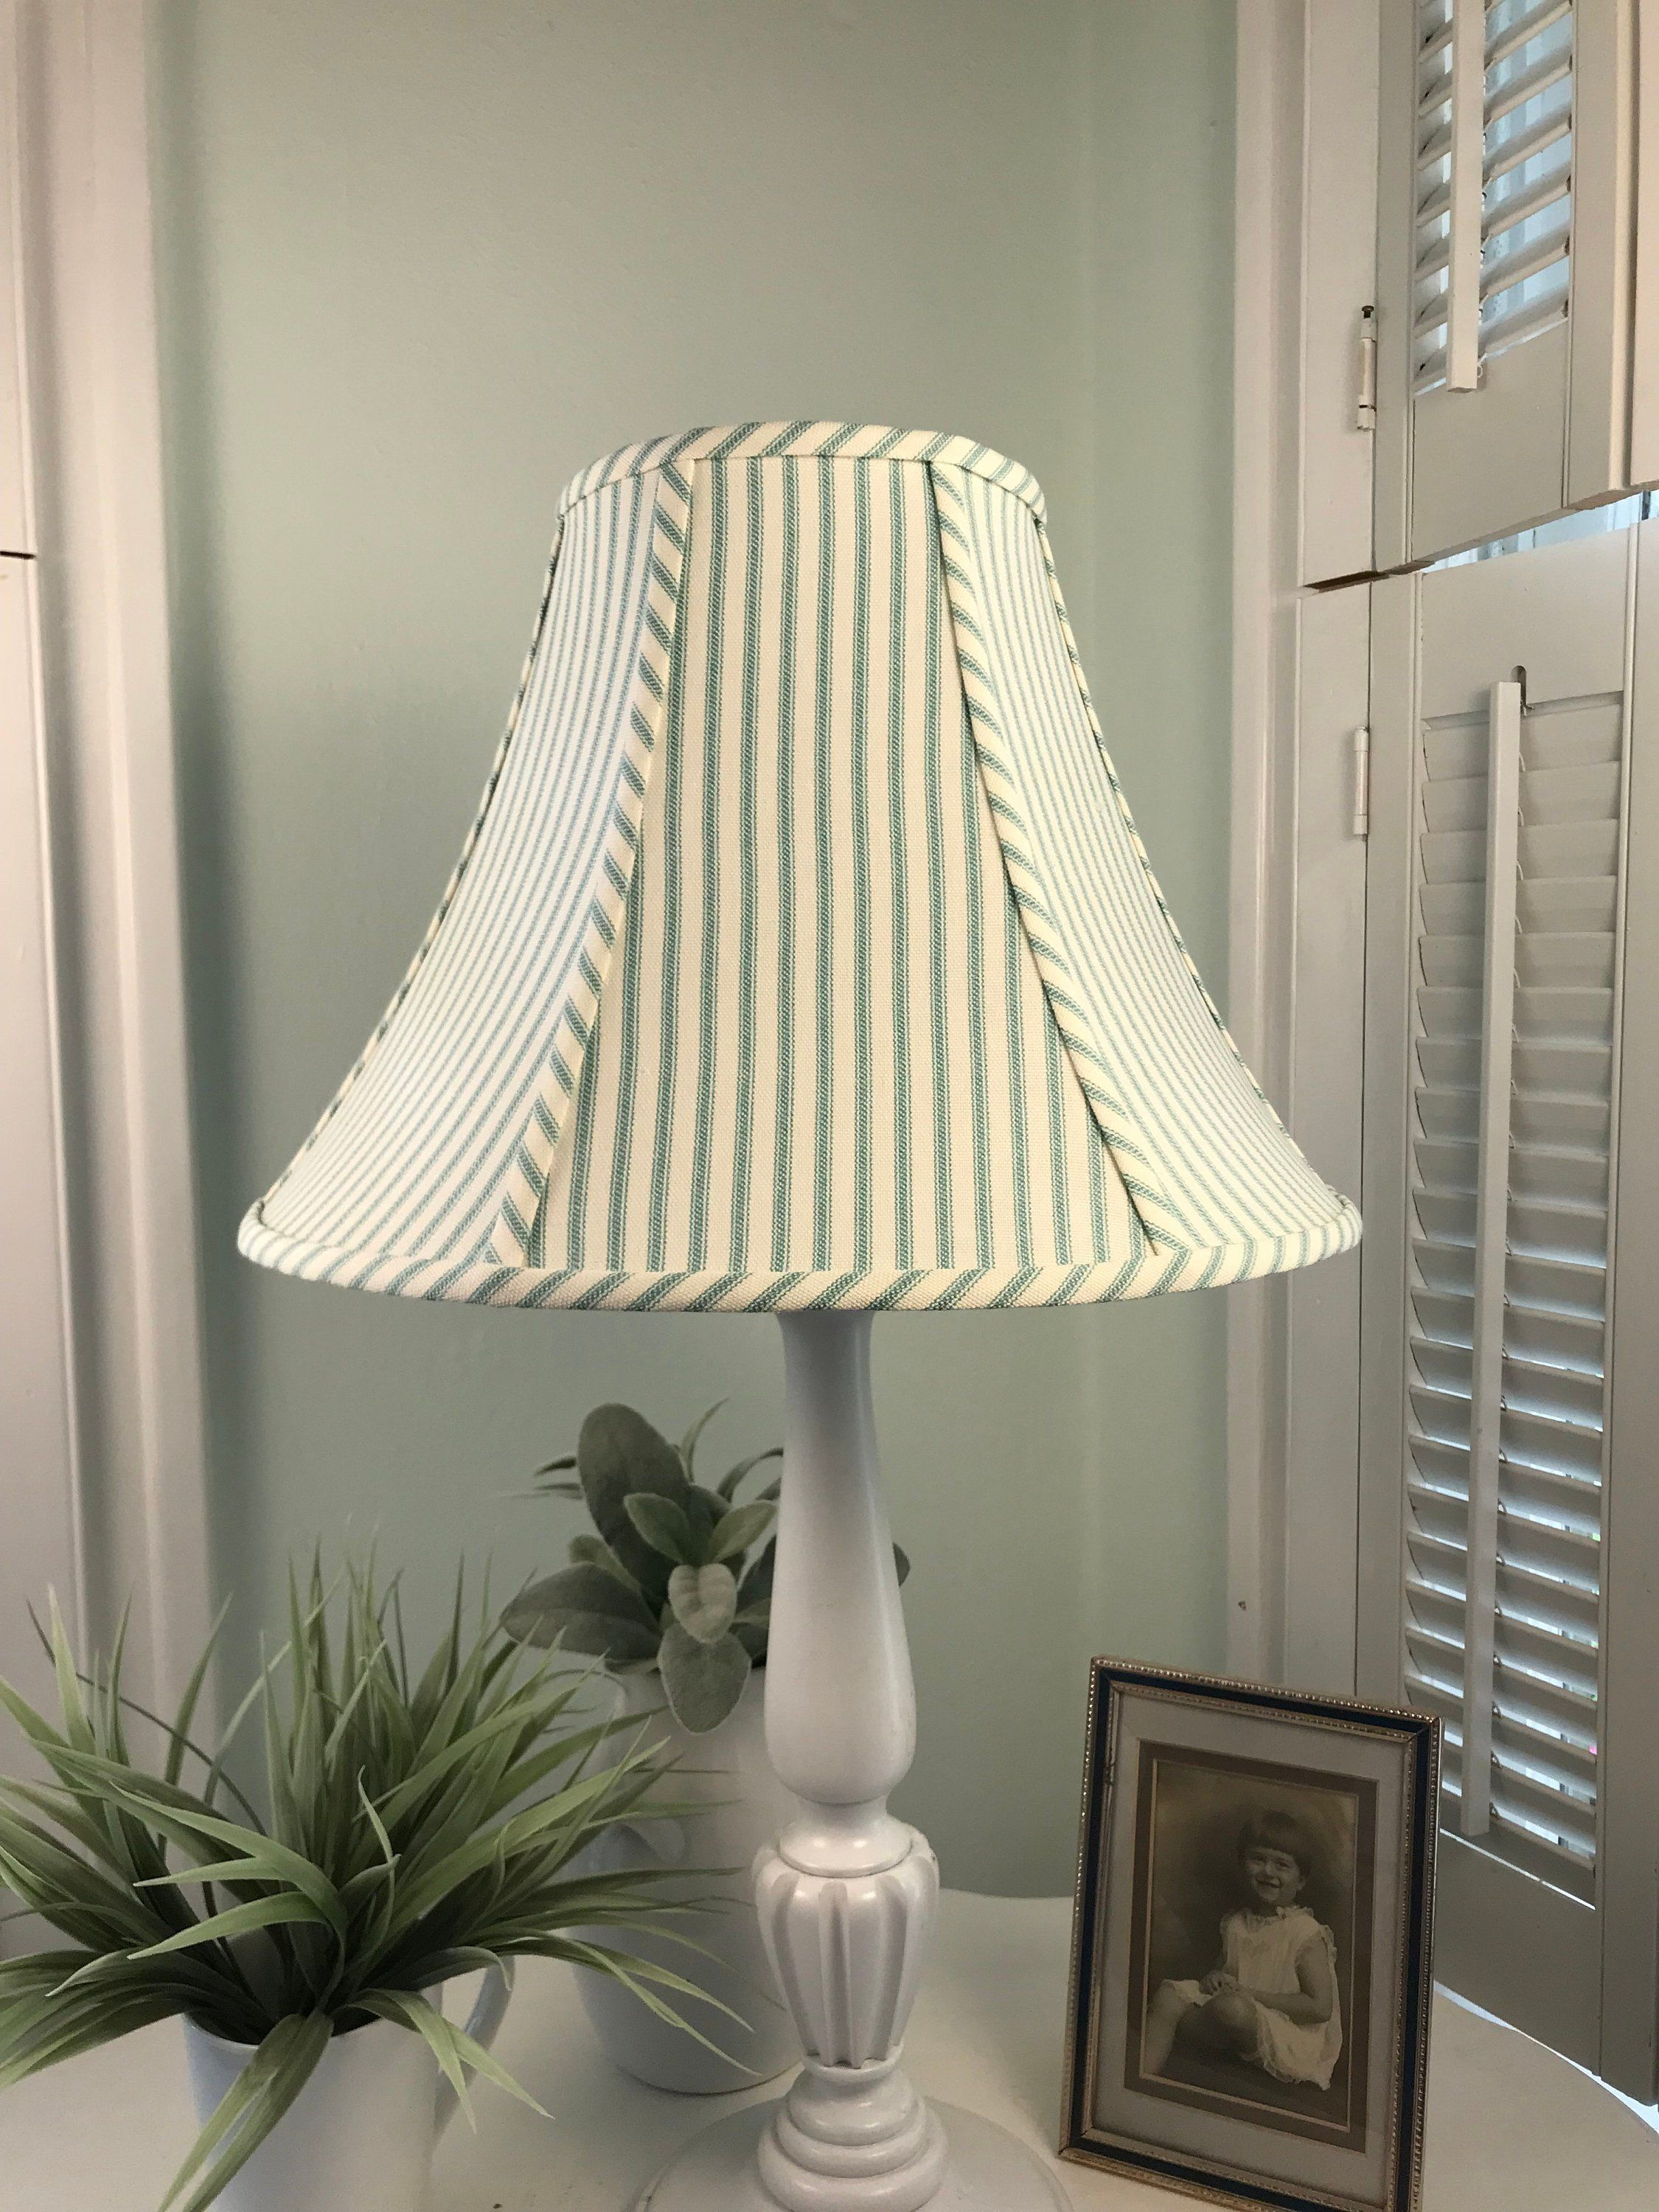 Toile Lamp Shade Red Toile Lamp French Country Lamp Shade Etsy Shabby Chic Lamp Shades Toile Lamp Lamp Shade